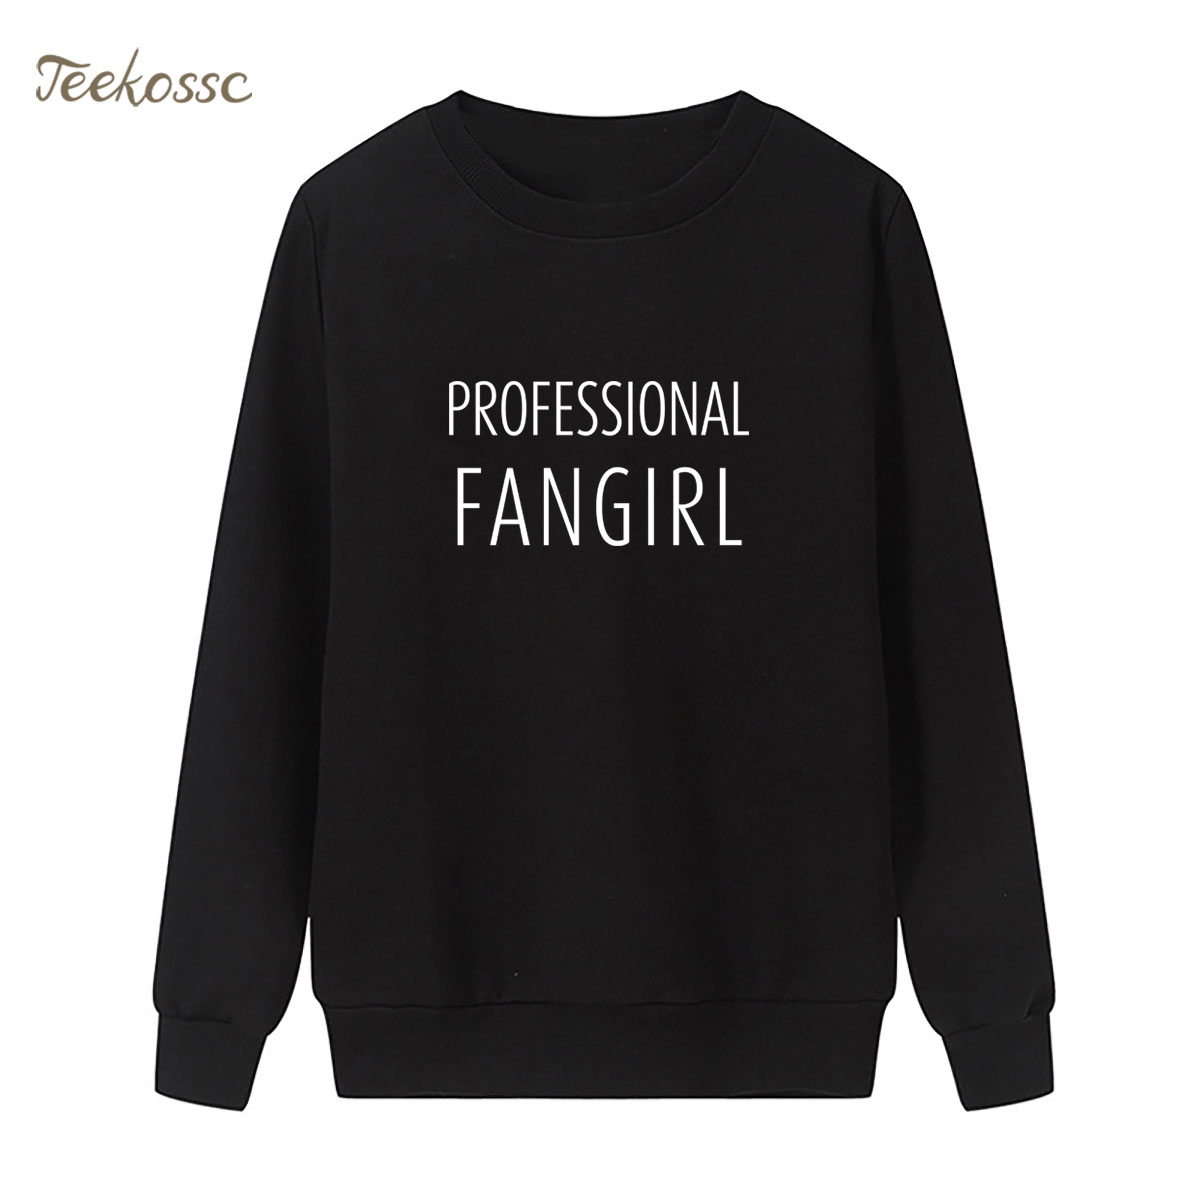 Professional Fangirl Sweatshirt Fashion Print Hoodie 2018 New Brand Winter Autumn Women Lasdies Pullover Loose Fleece Streetwear